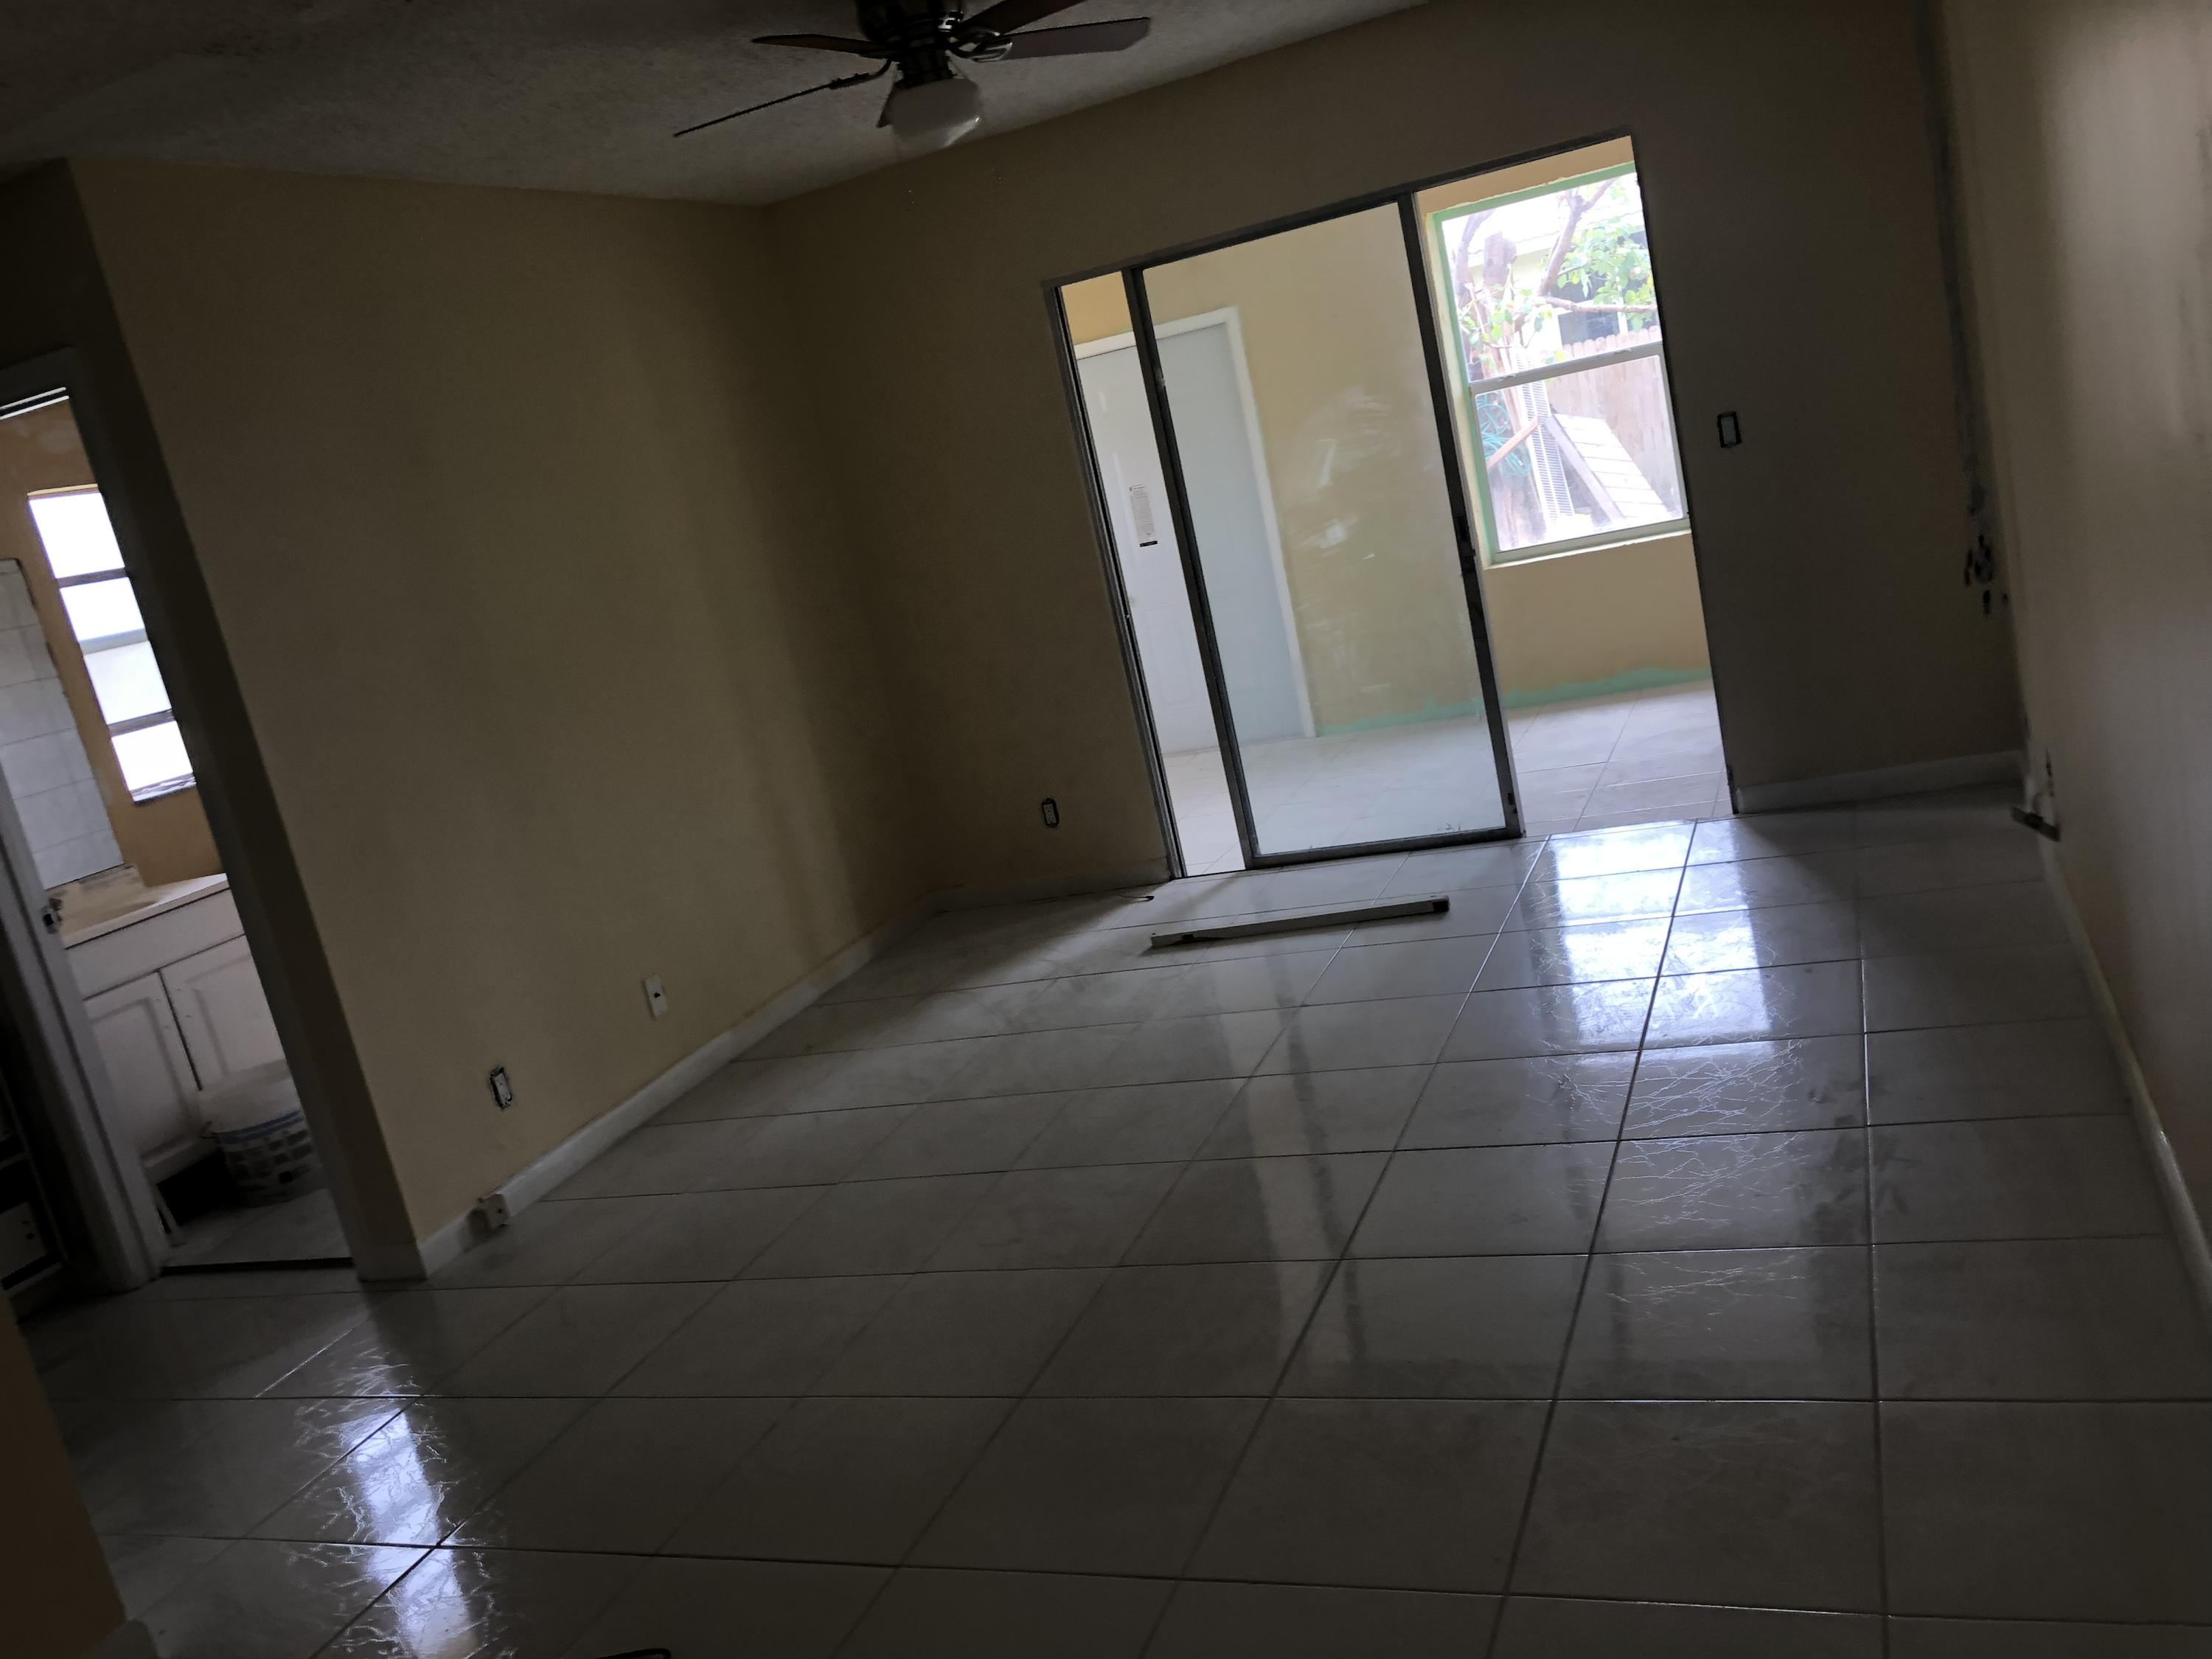 4112 Temple Street, West Palm Beach, Florida 33407, 4 Bedrooms Bedrooms, ,3 BathroomsBathrooms,Rental,For Rent,Temple,RX-10555800